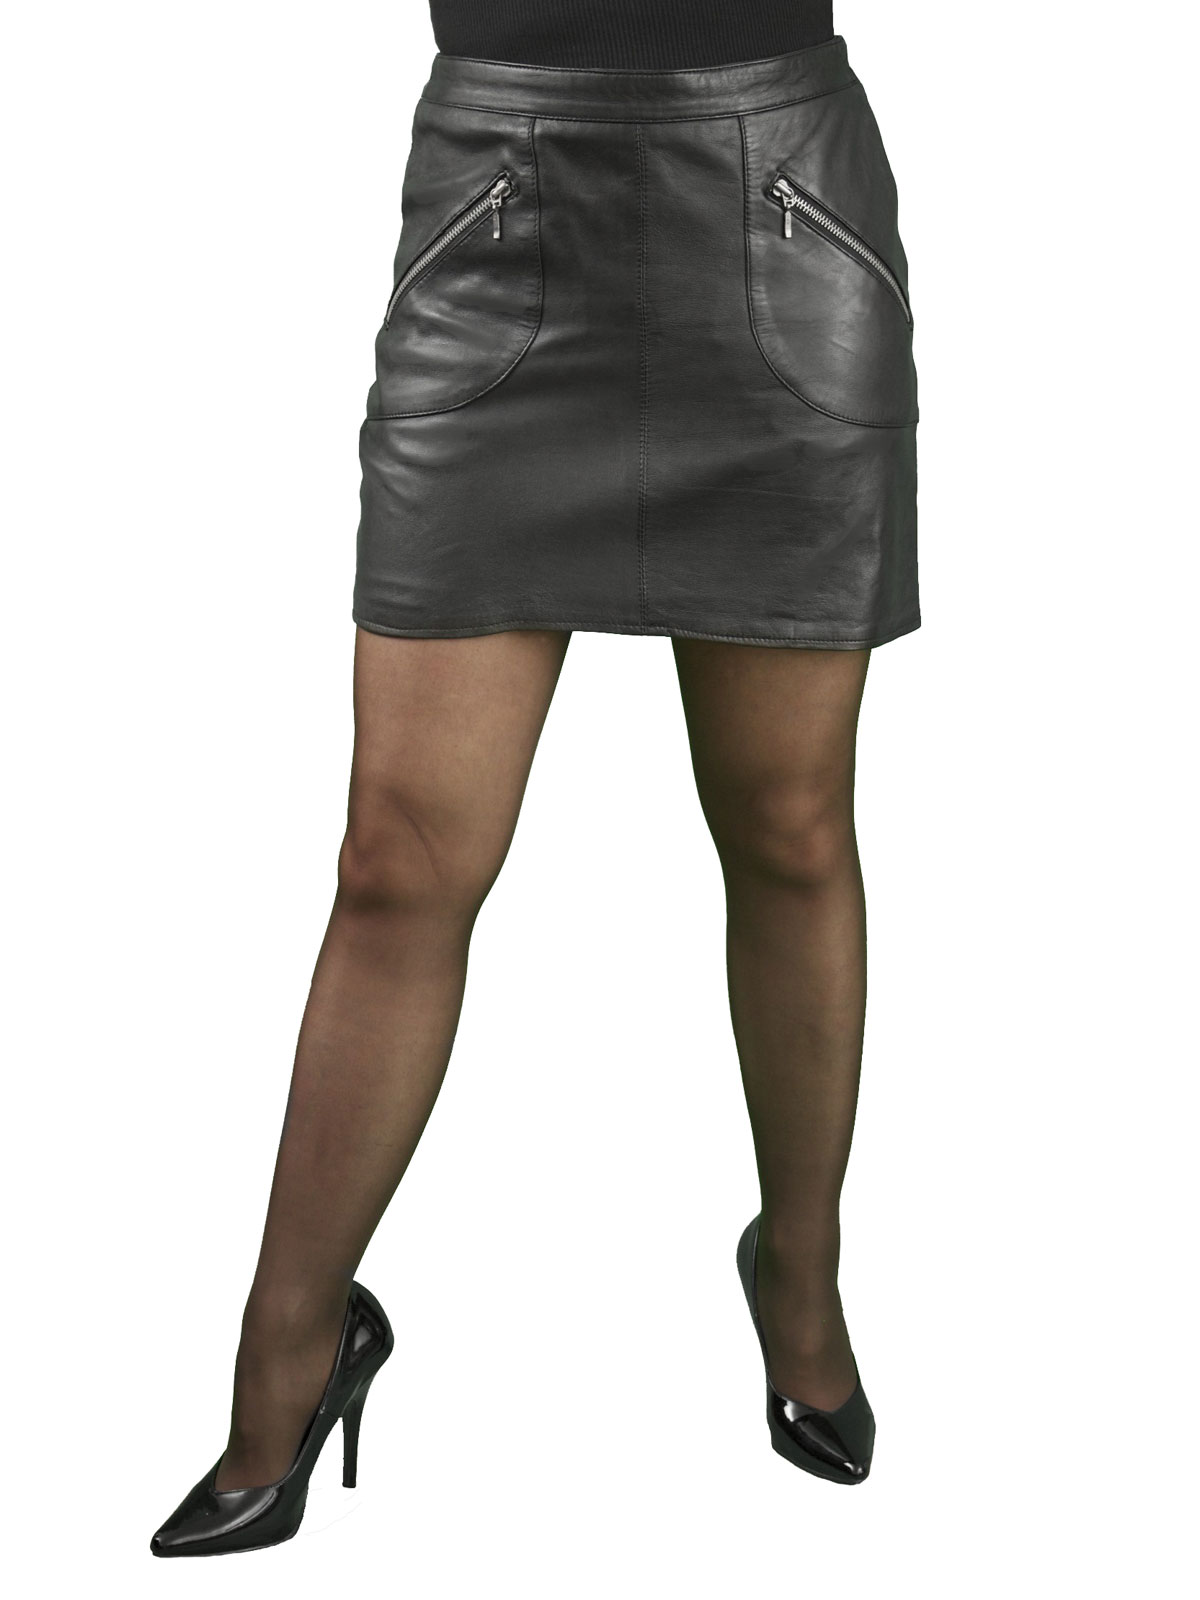 Black Hipster Leather Mini Skirt, zip pockets - Tout Ensemble